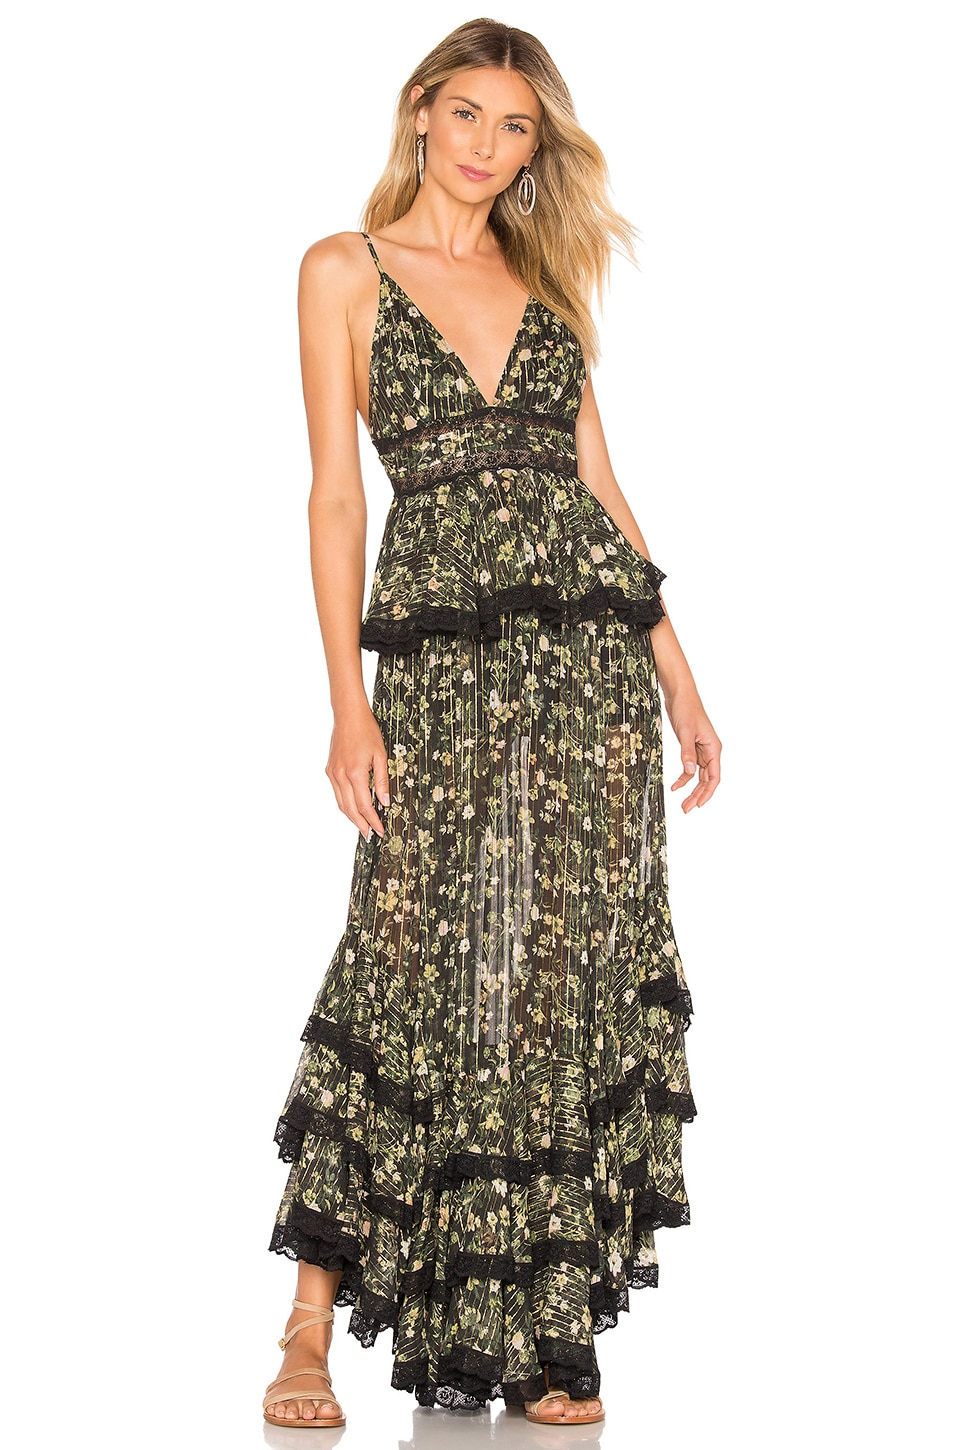 ROCOCO SAND Tiered Long Dress in Black Floral